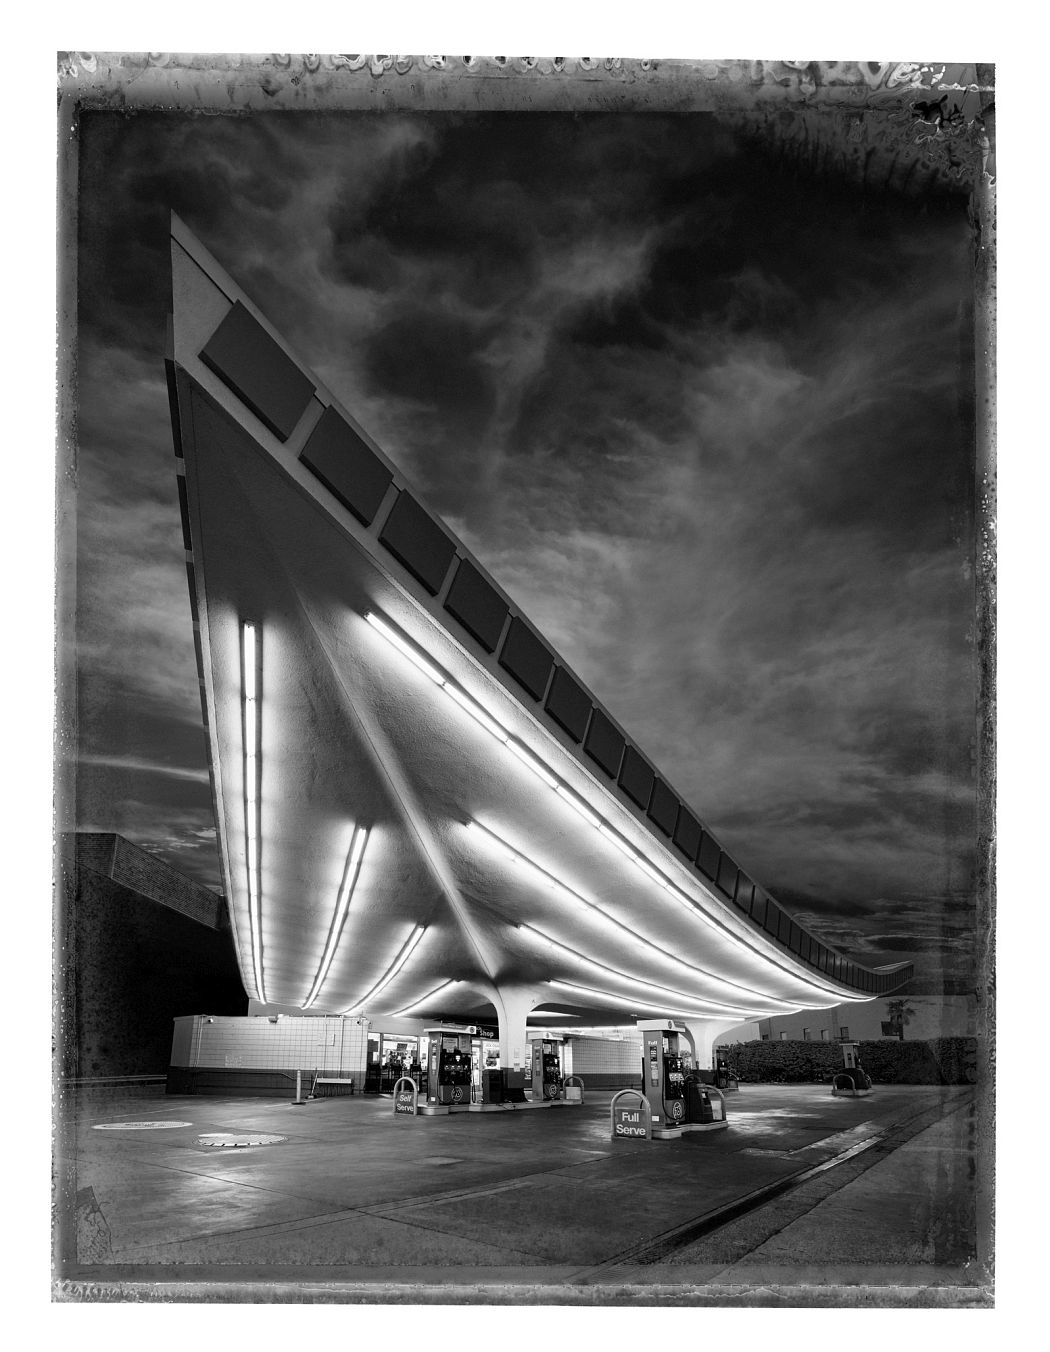 Christopher Thomas Frontpiece Union Gas Station, 2017 Pigment-Print auf Büttenpapier 76 x 56 cm, Auflage 25 © Christopher Thomas / Courtesy Persiehl & Heine Gallery for Photography